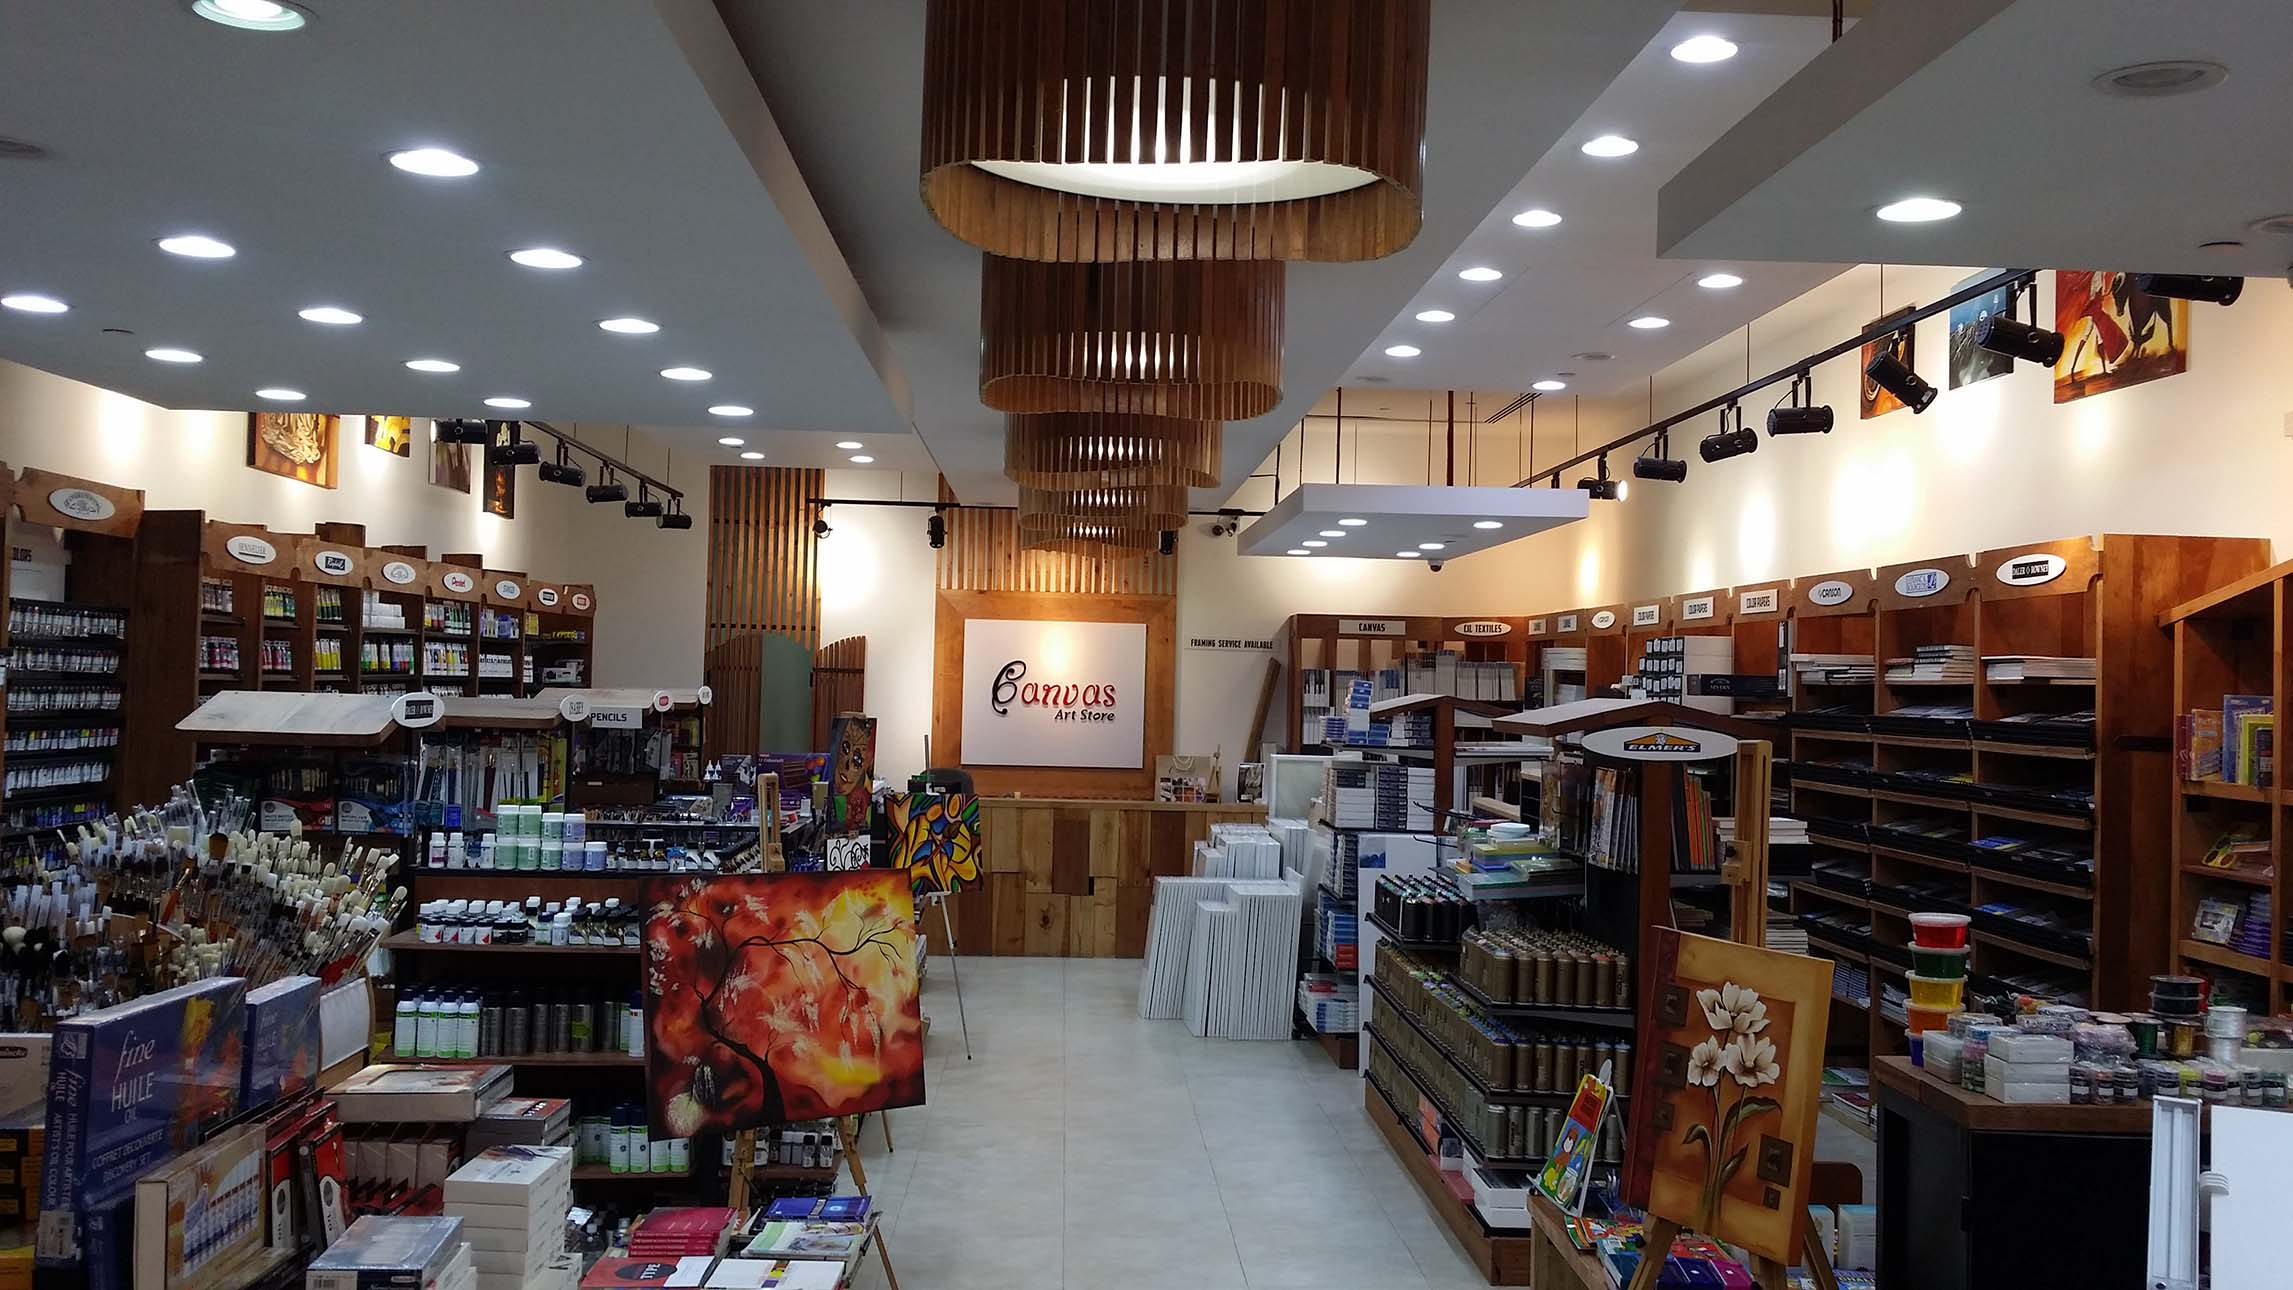 Canvas Art Store Is On Of The Leading Art Stores In GCC.